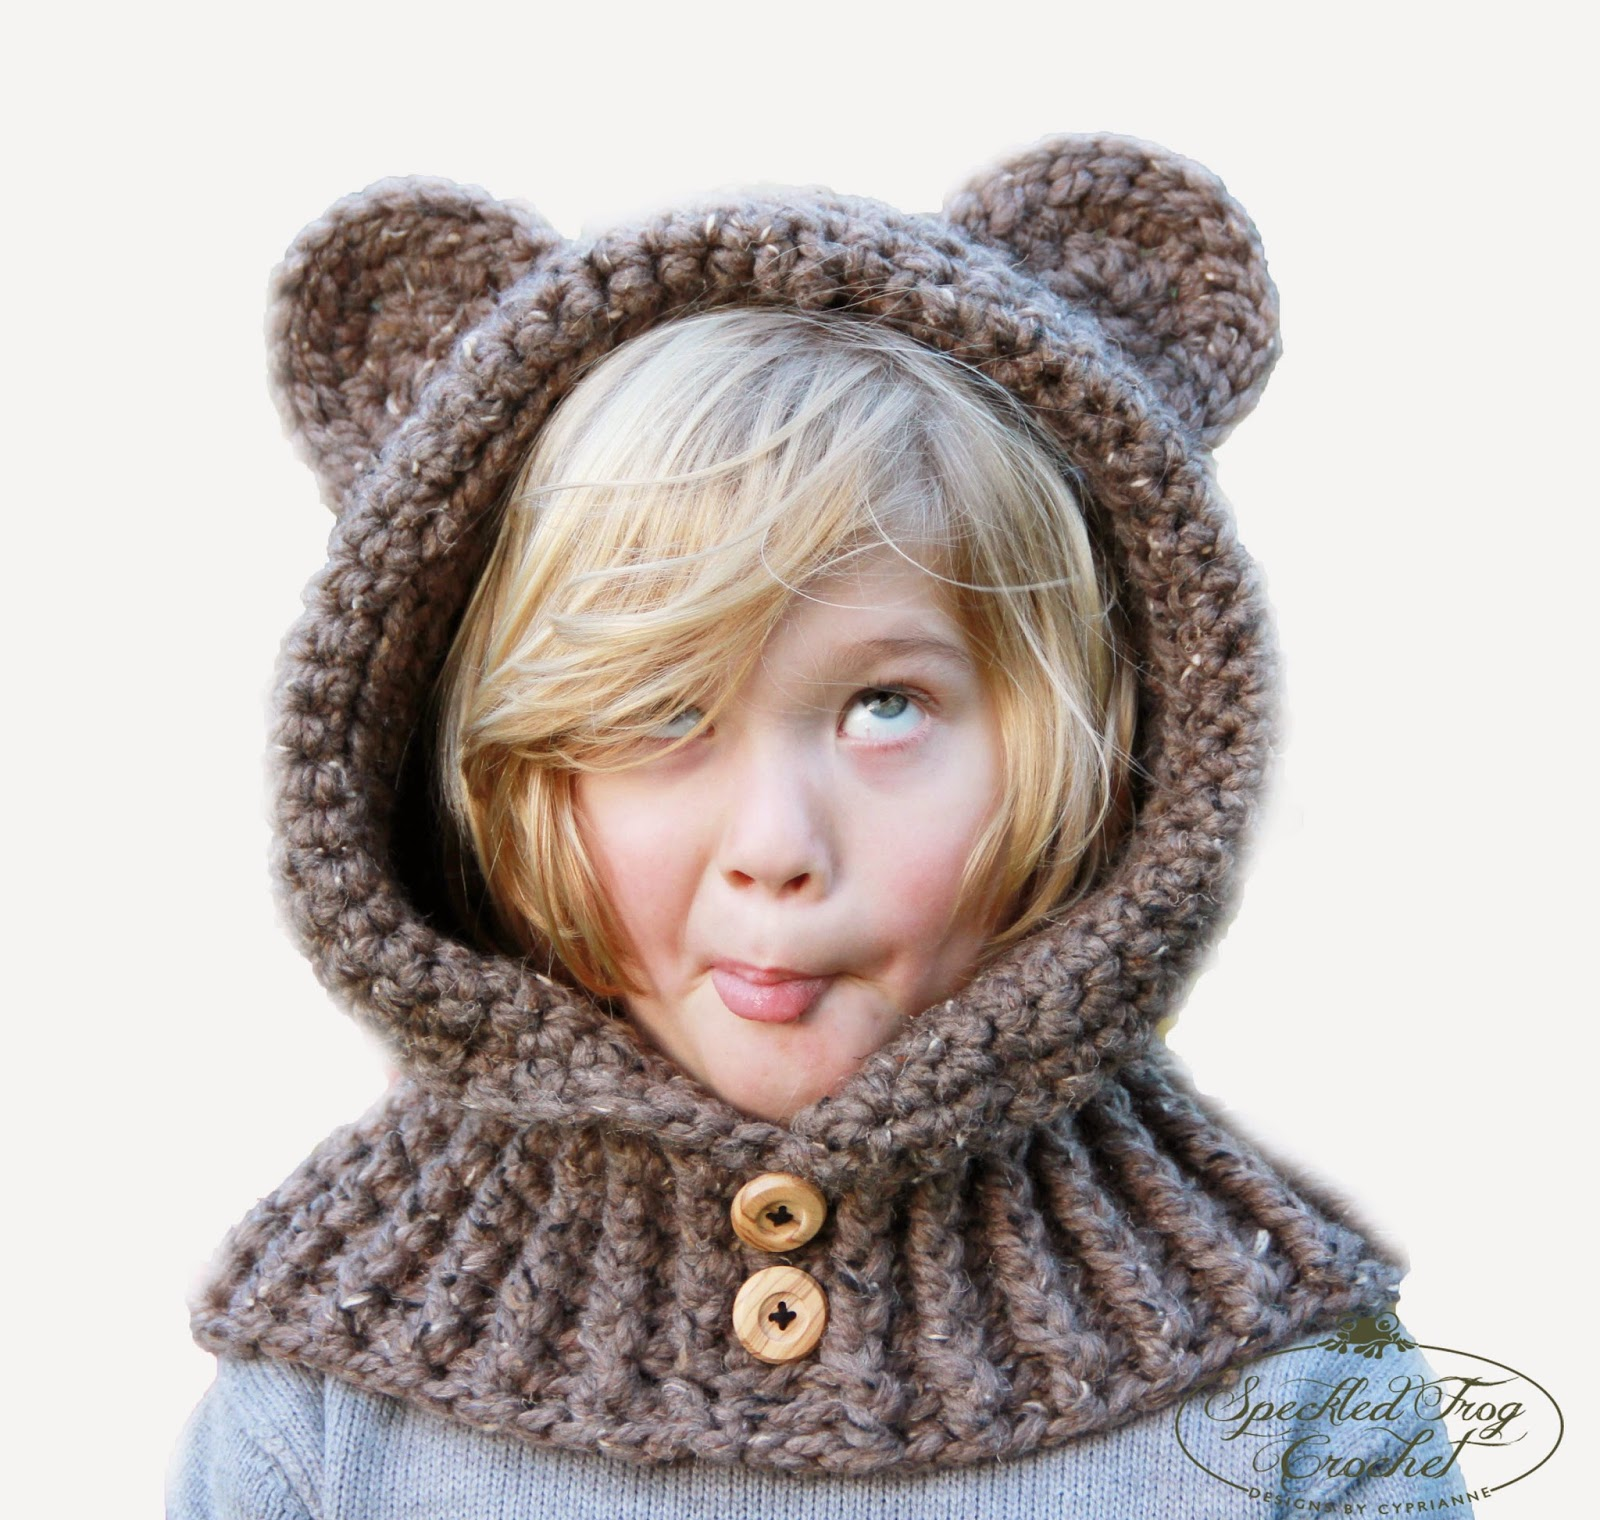 Free Crochet Pattern Toddler Hooded Cowl : Pretty Darn Adorable Crochet: CROCHET HOODED BEAR COWL PATTERN